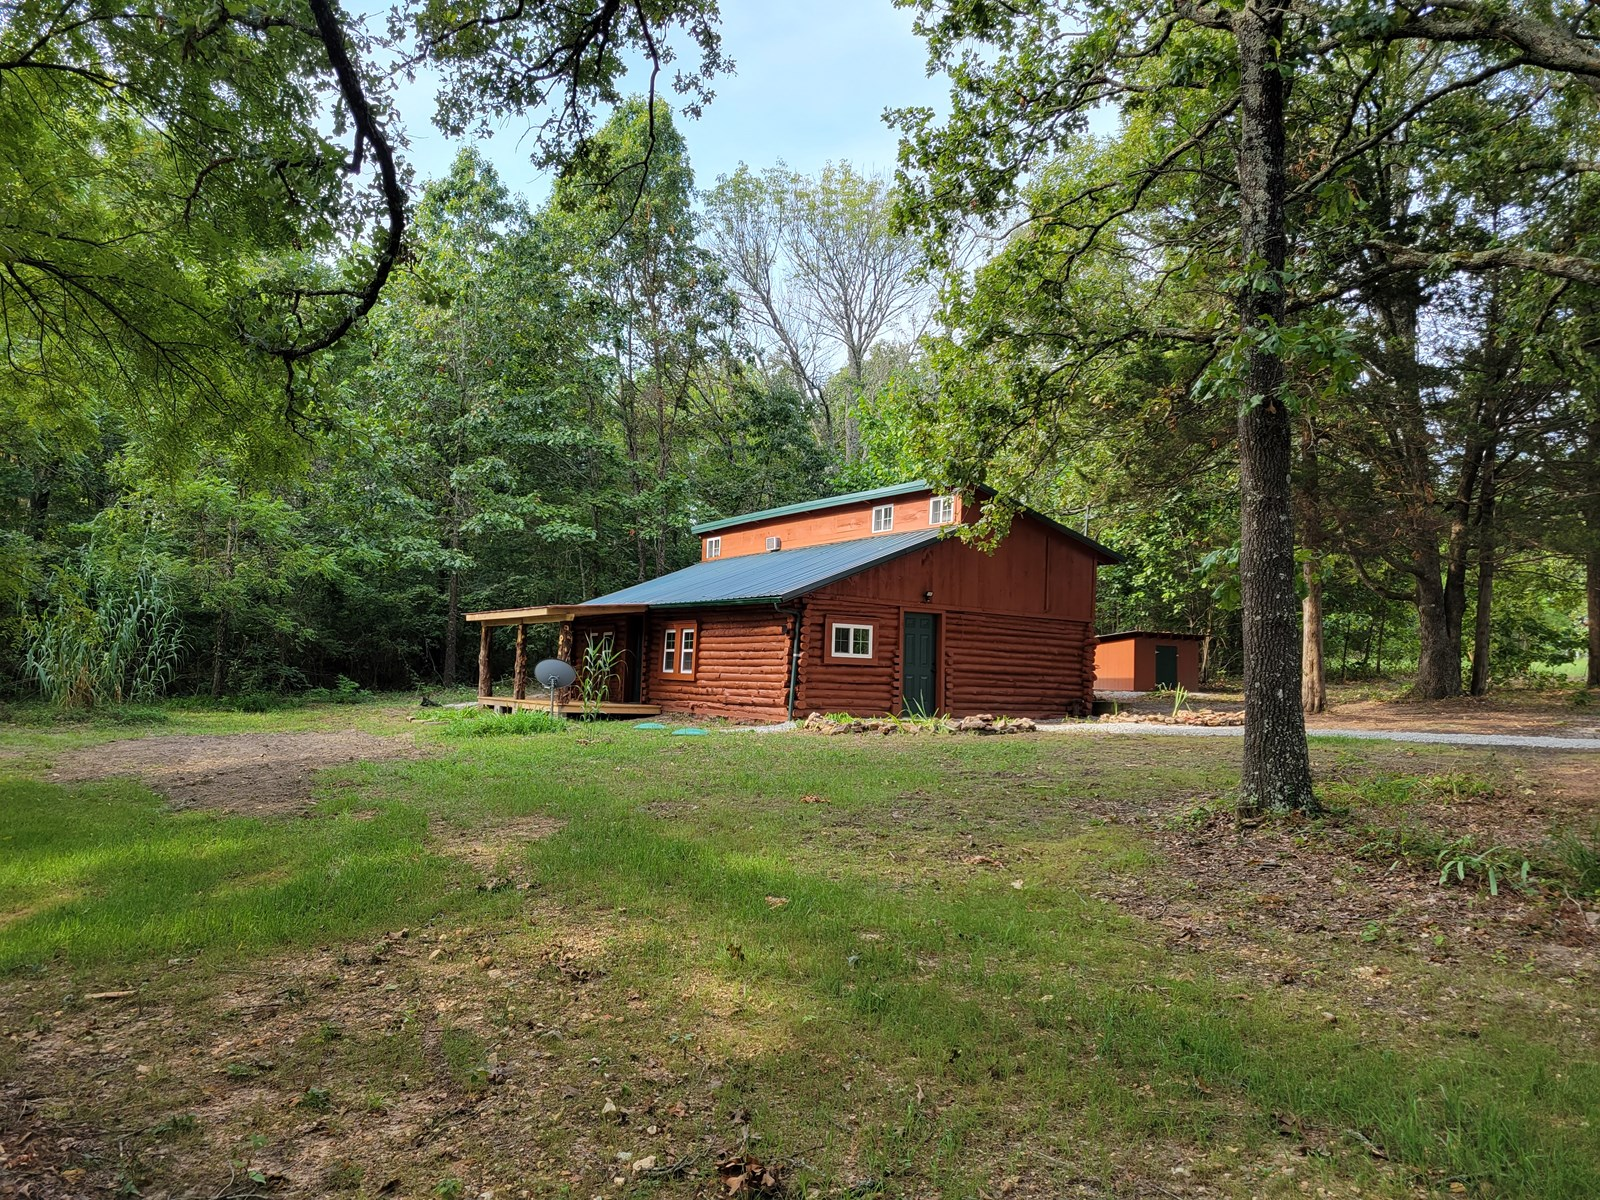 Southern Missouri Ozarks Home and Land for Sale!